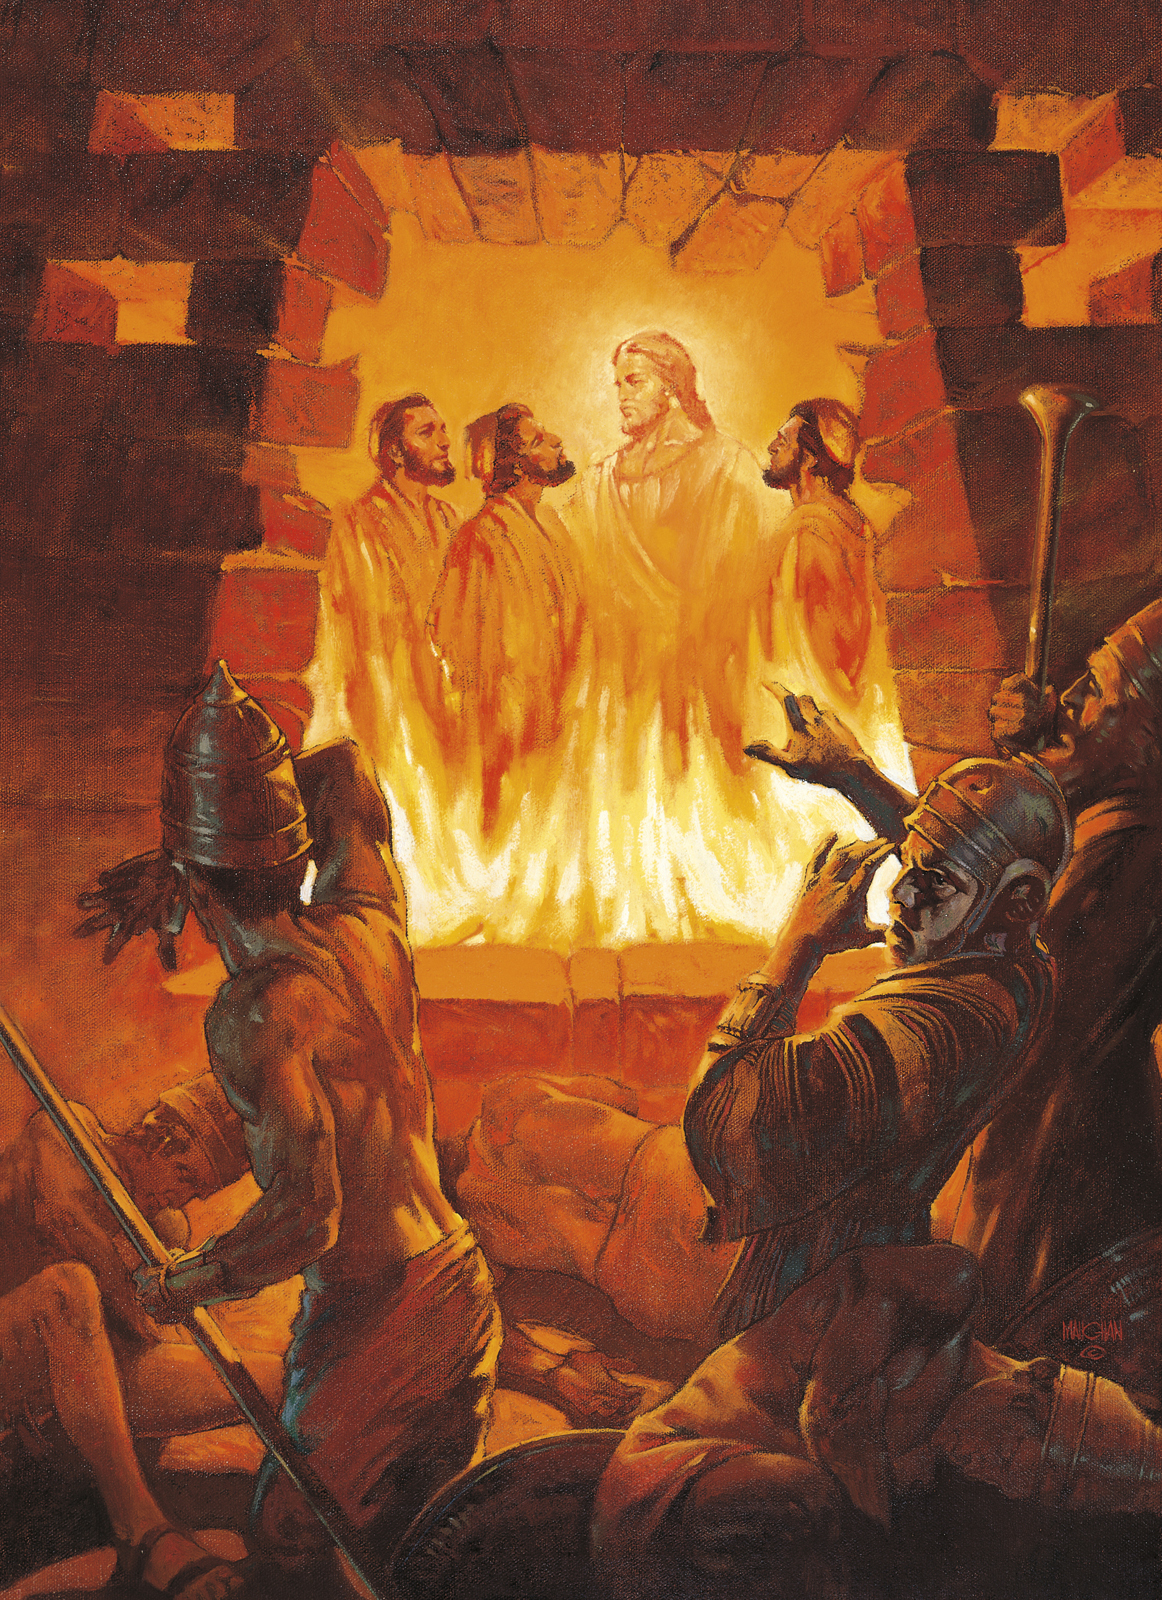 Three Men in the Fiery Furnace (Shadrach, Meshach, and